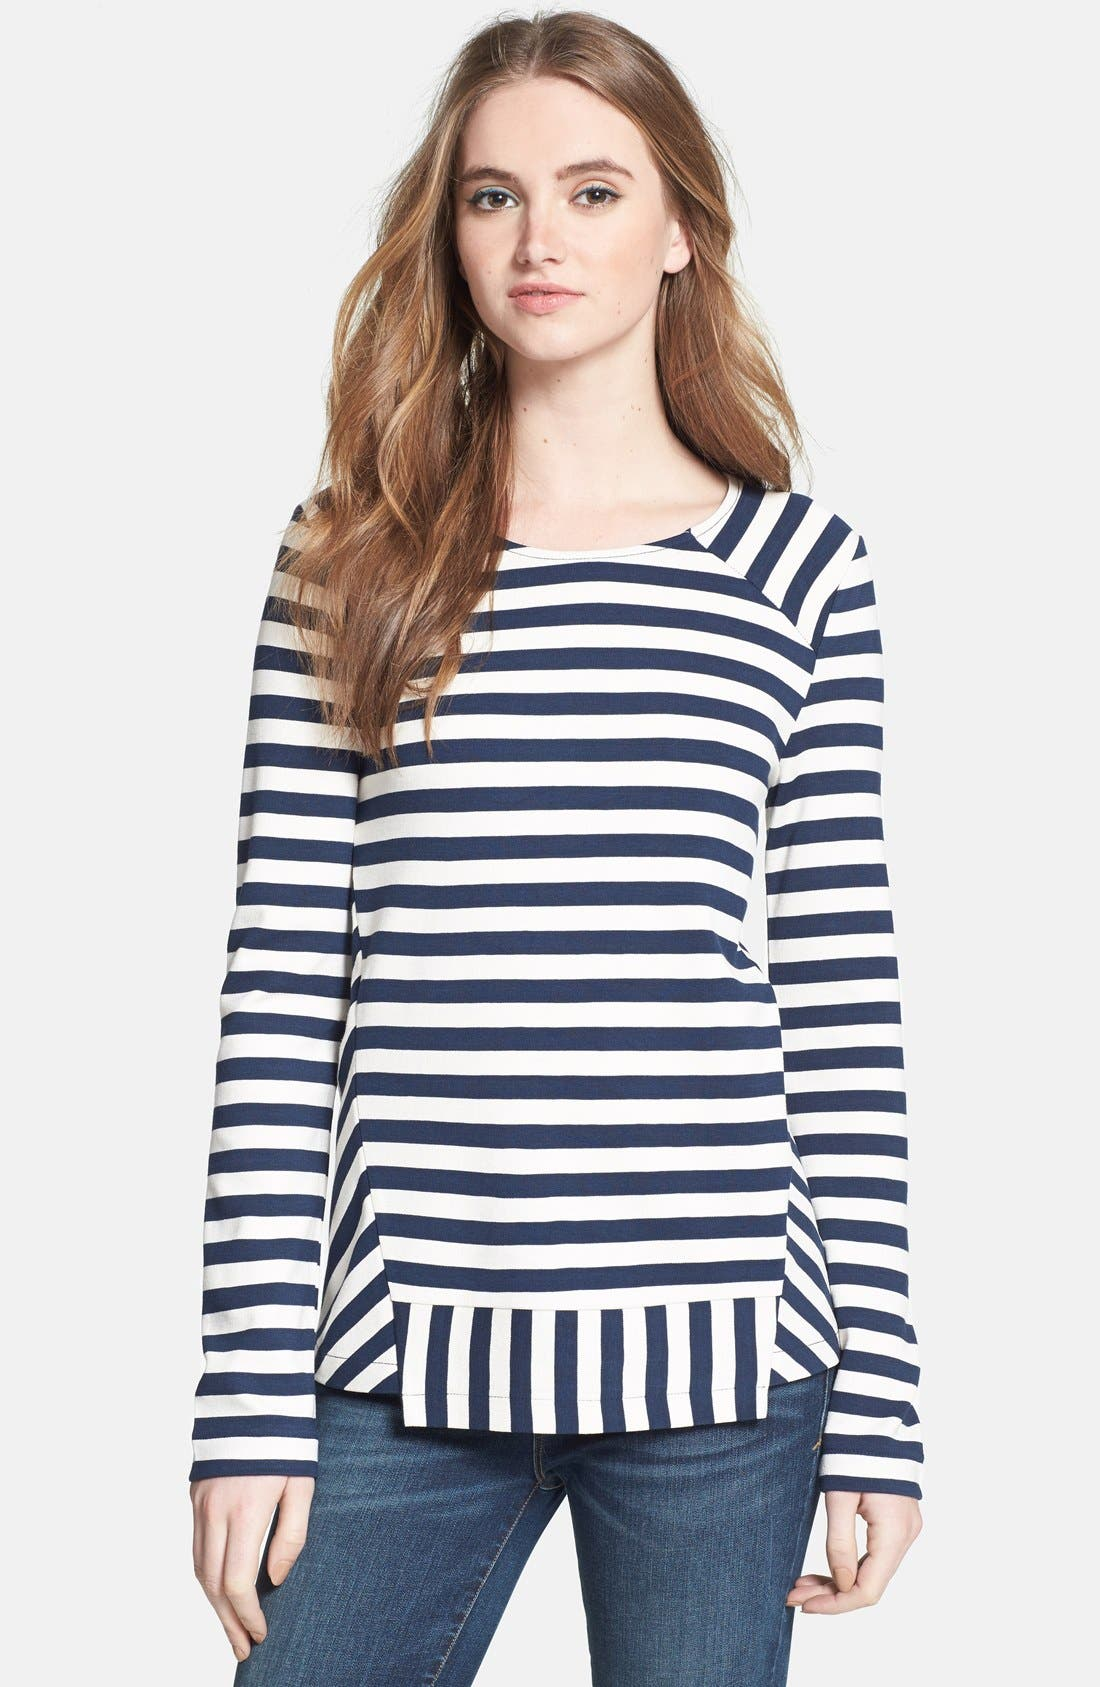 Alternate Image 1 Selected - MARC BY MARC JACOBS 'Yuni' Stripe Tee